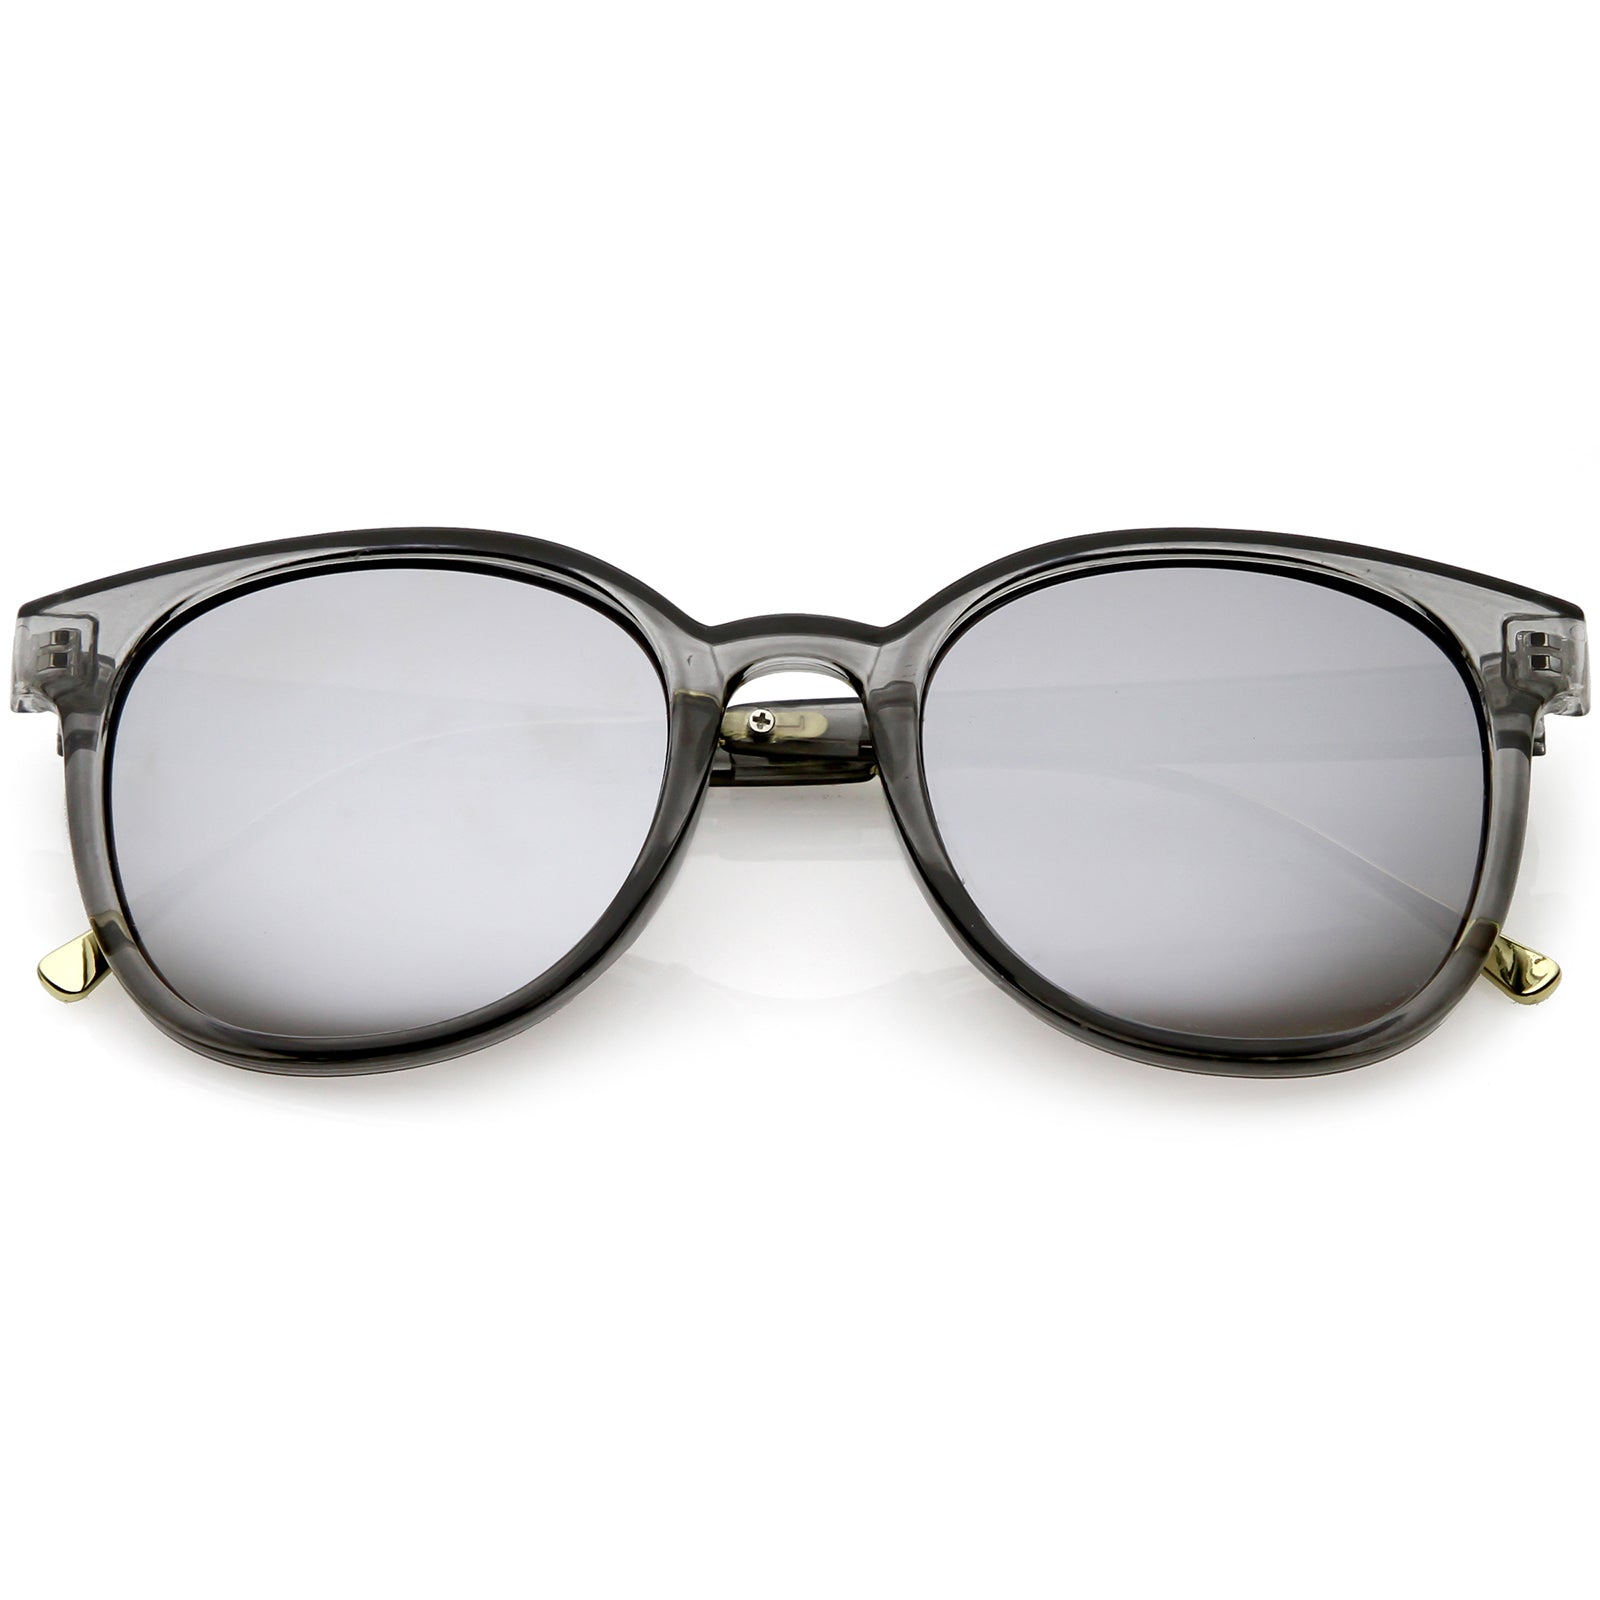 c4e2013b62c8f Smoke   Silver Mirror. Modern Translucent Horn Rimmed Sunglasses with Round  Mirrored Lens 52mm